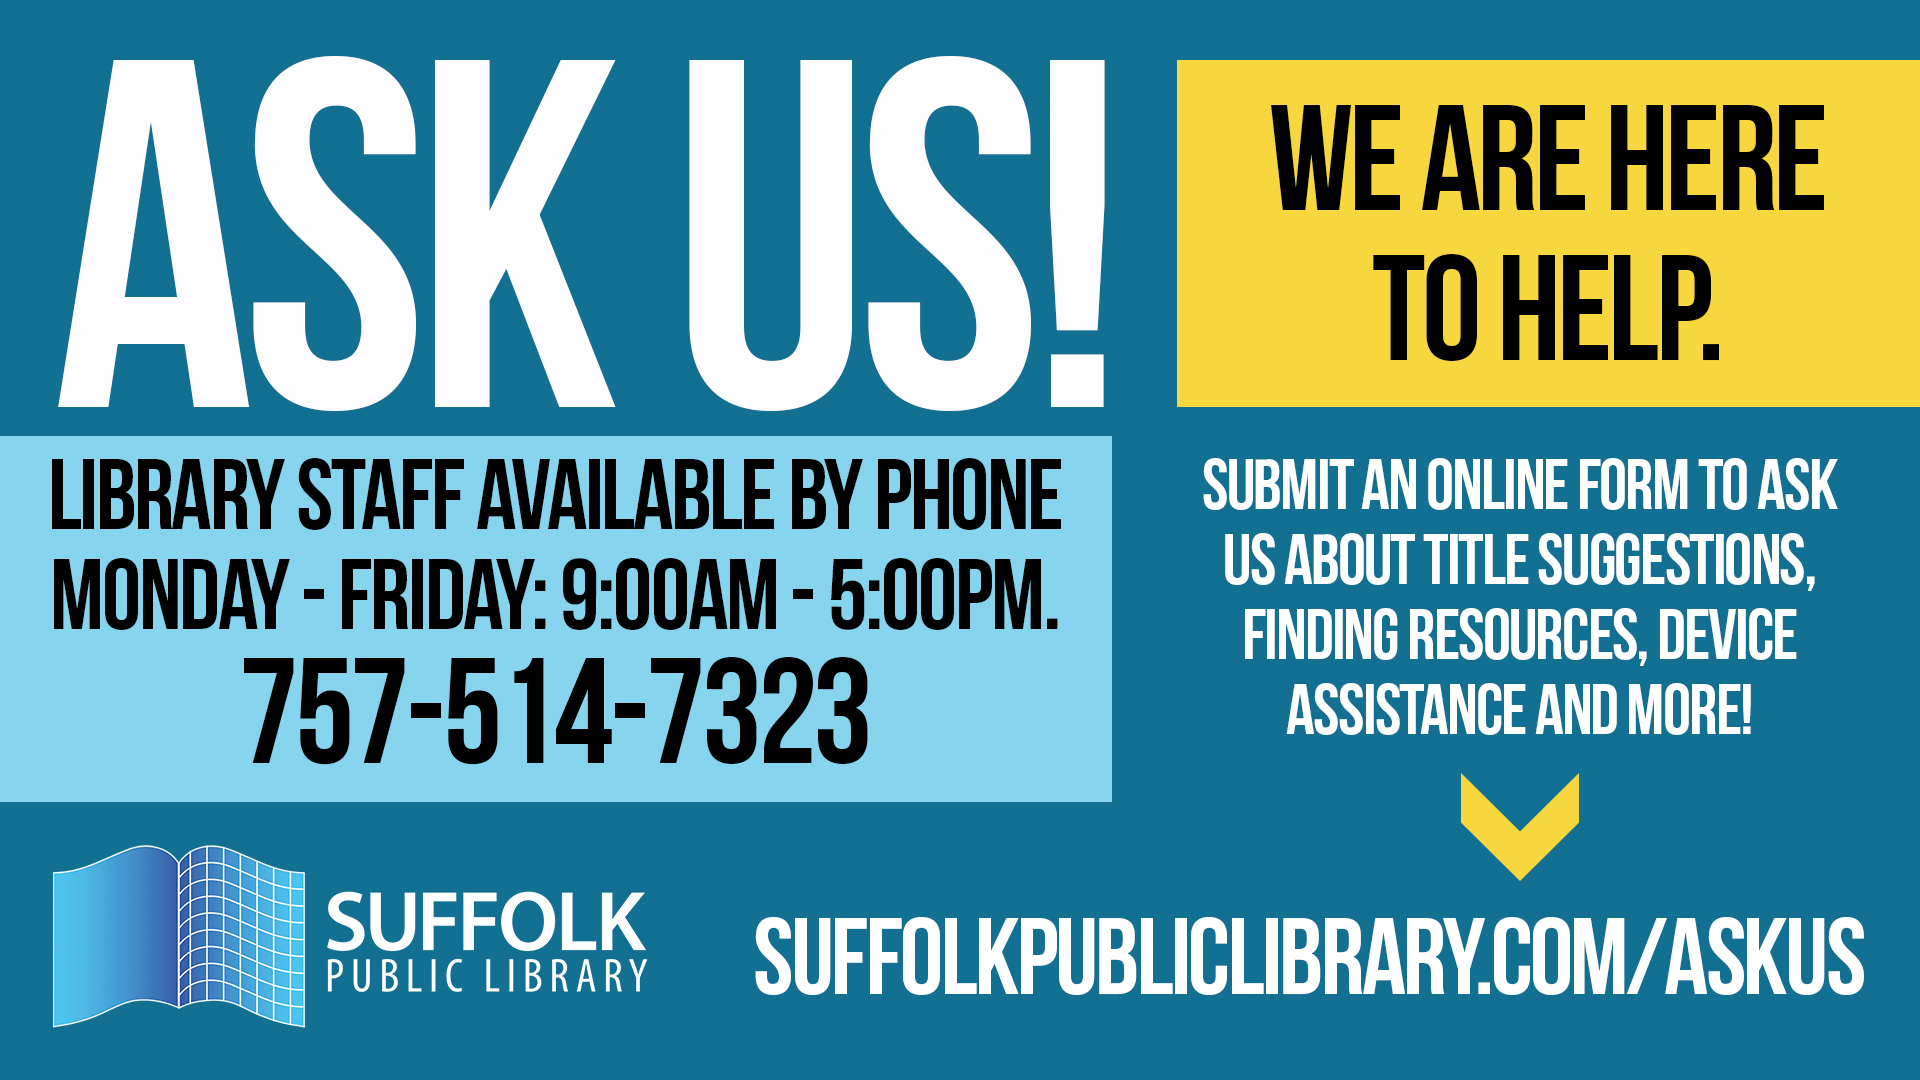 Ask Us We are Here to Help Library staff available by phone Monday - Friday: 9:00AM - 5:00PM.  757-5